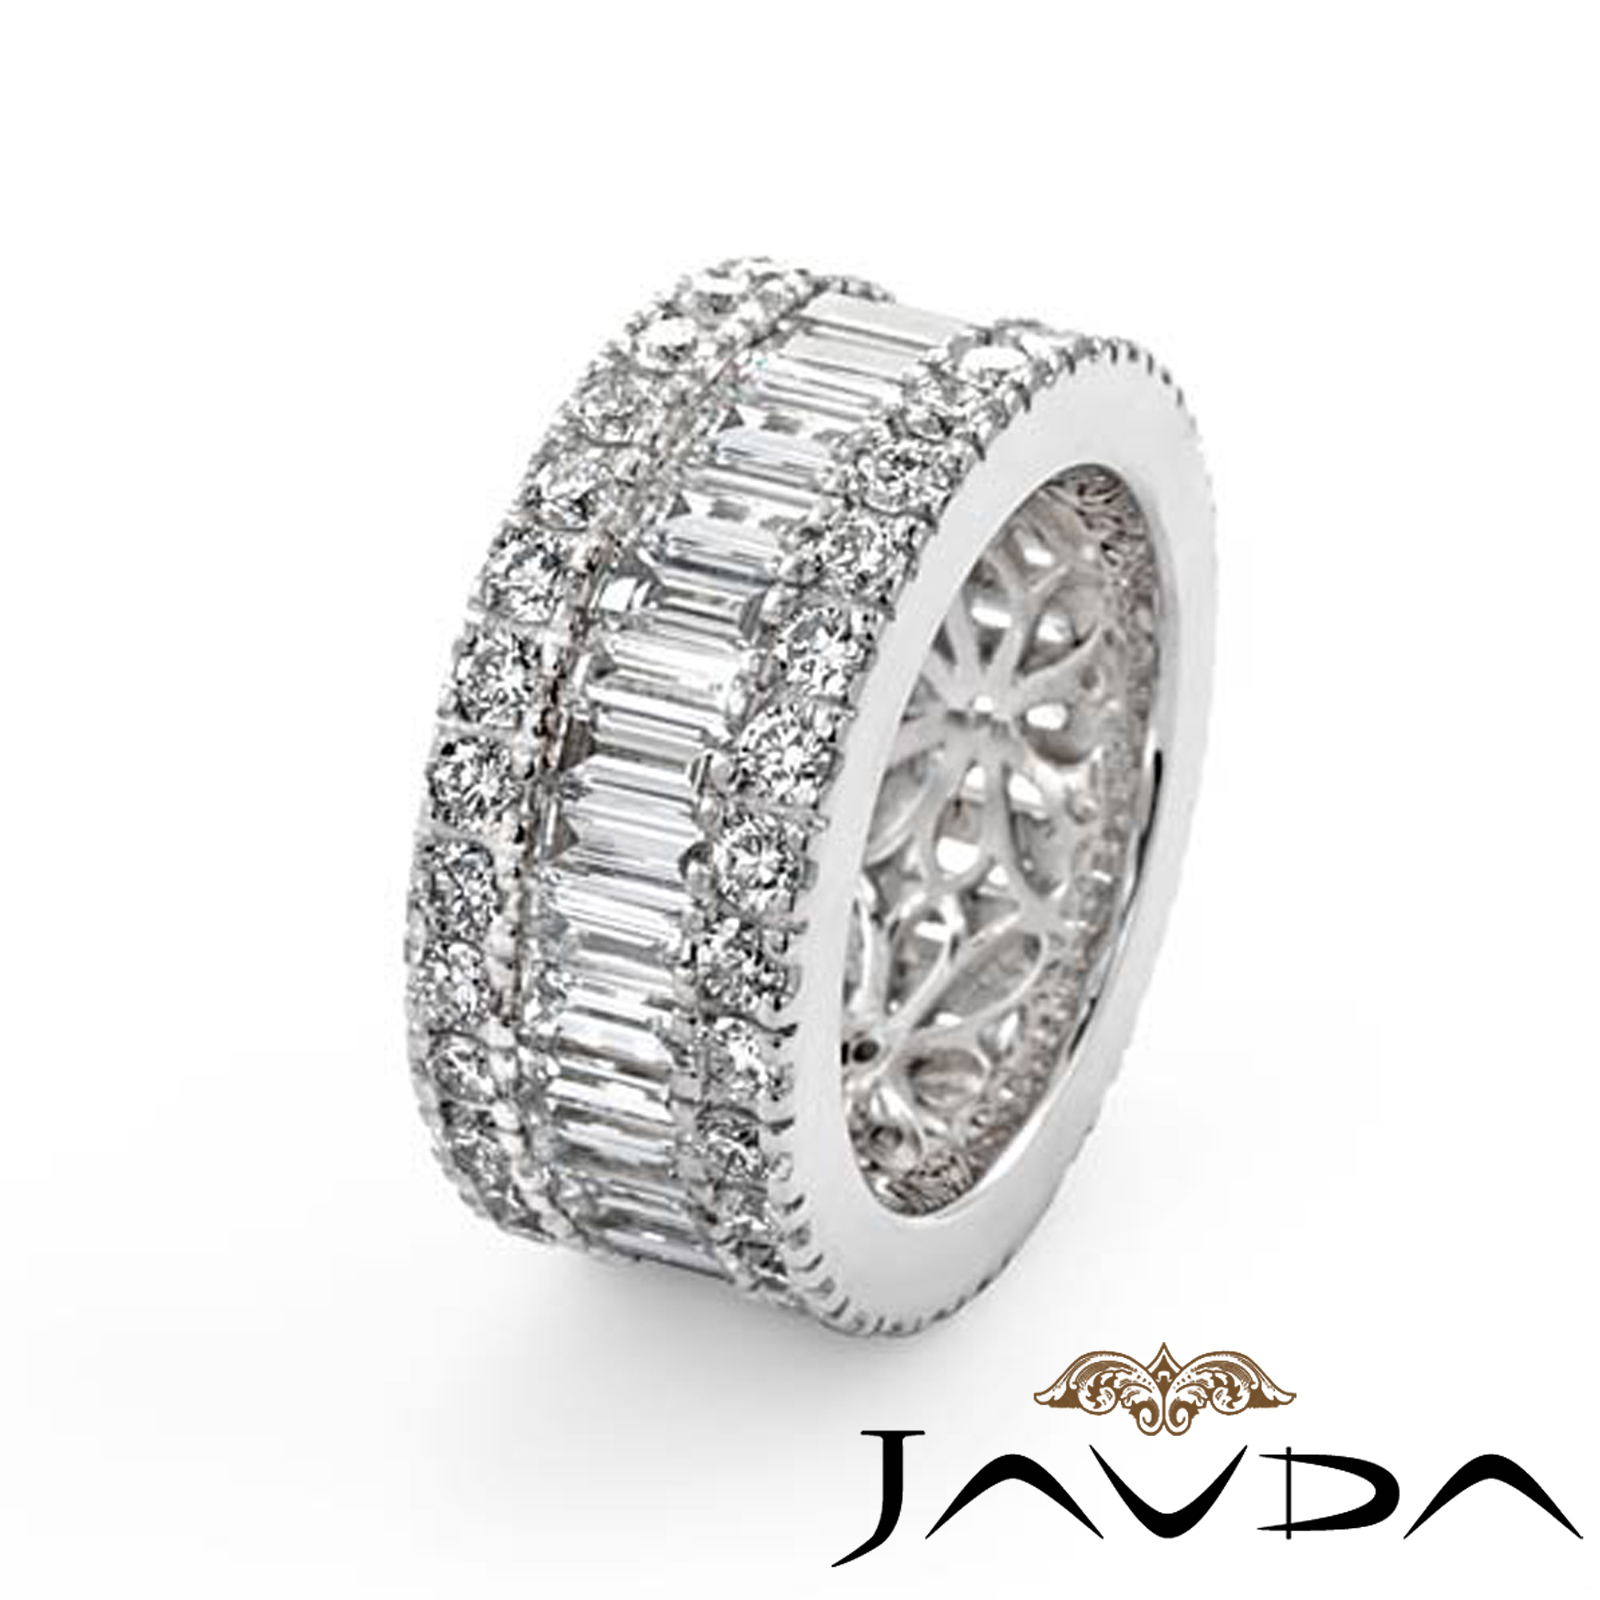 ring products band platinum bands wide baguette wedding jewellers diamond campbell rings brilliant dublin eternity round